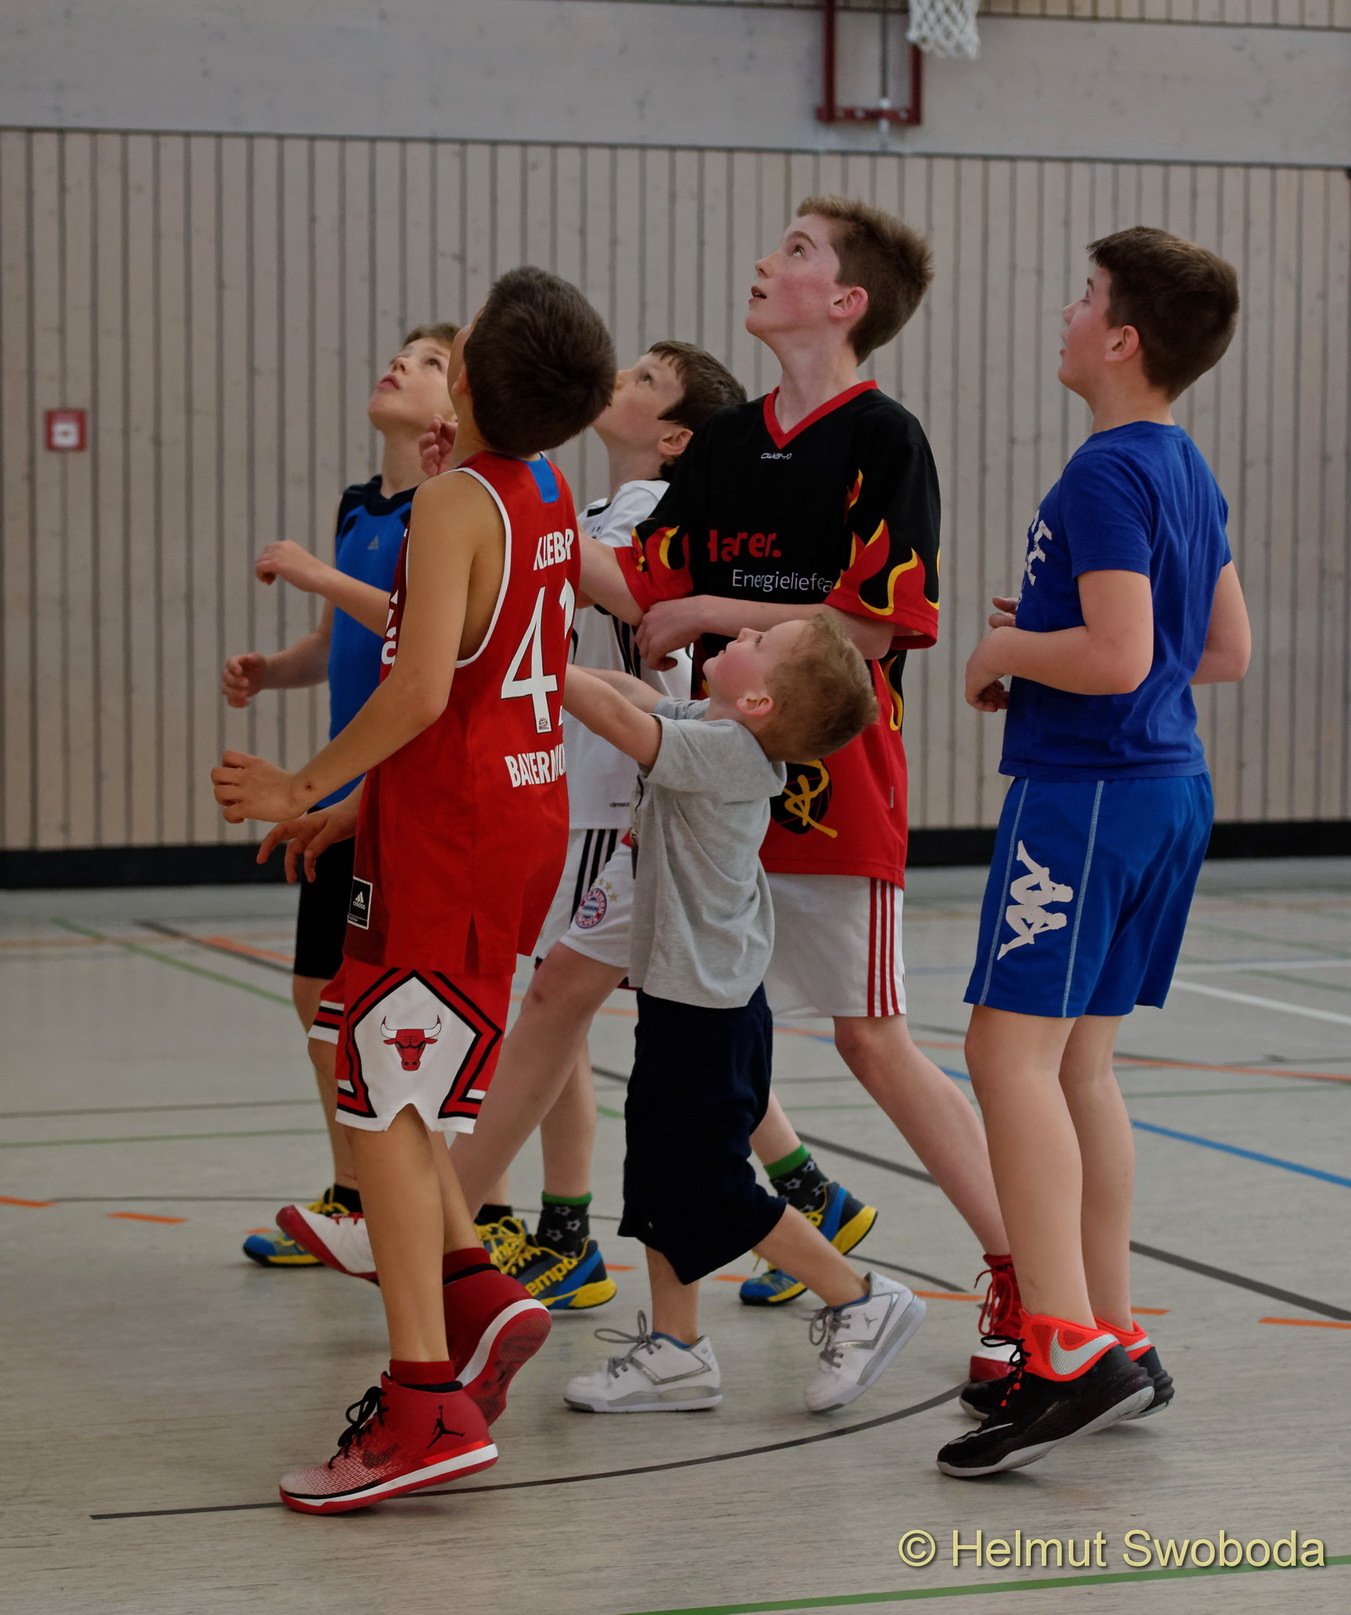 d170402-162729100-100-basketball_weilheim-mixed-turnier_33772898896_o